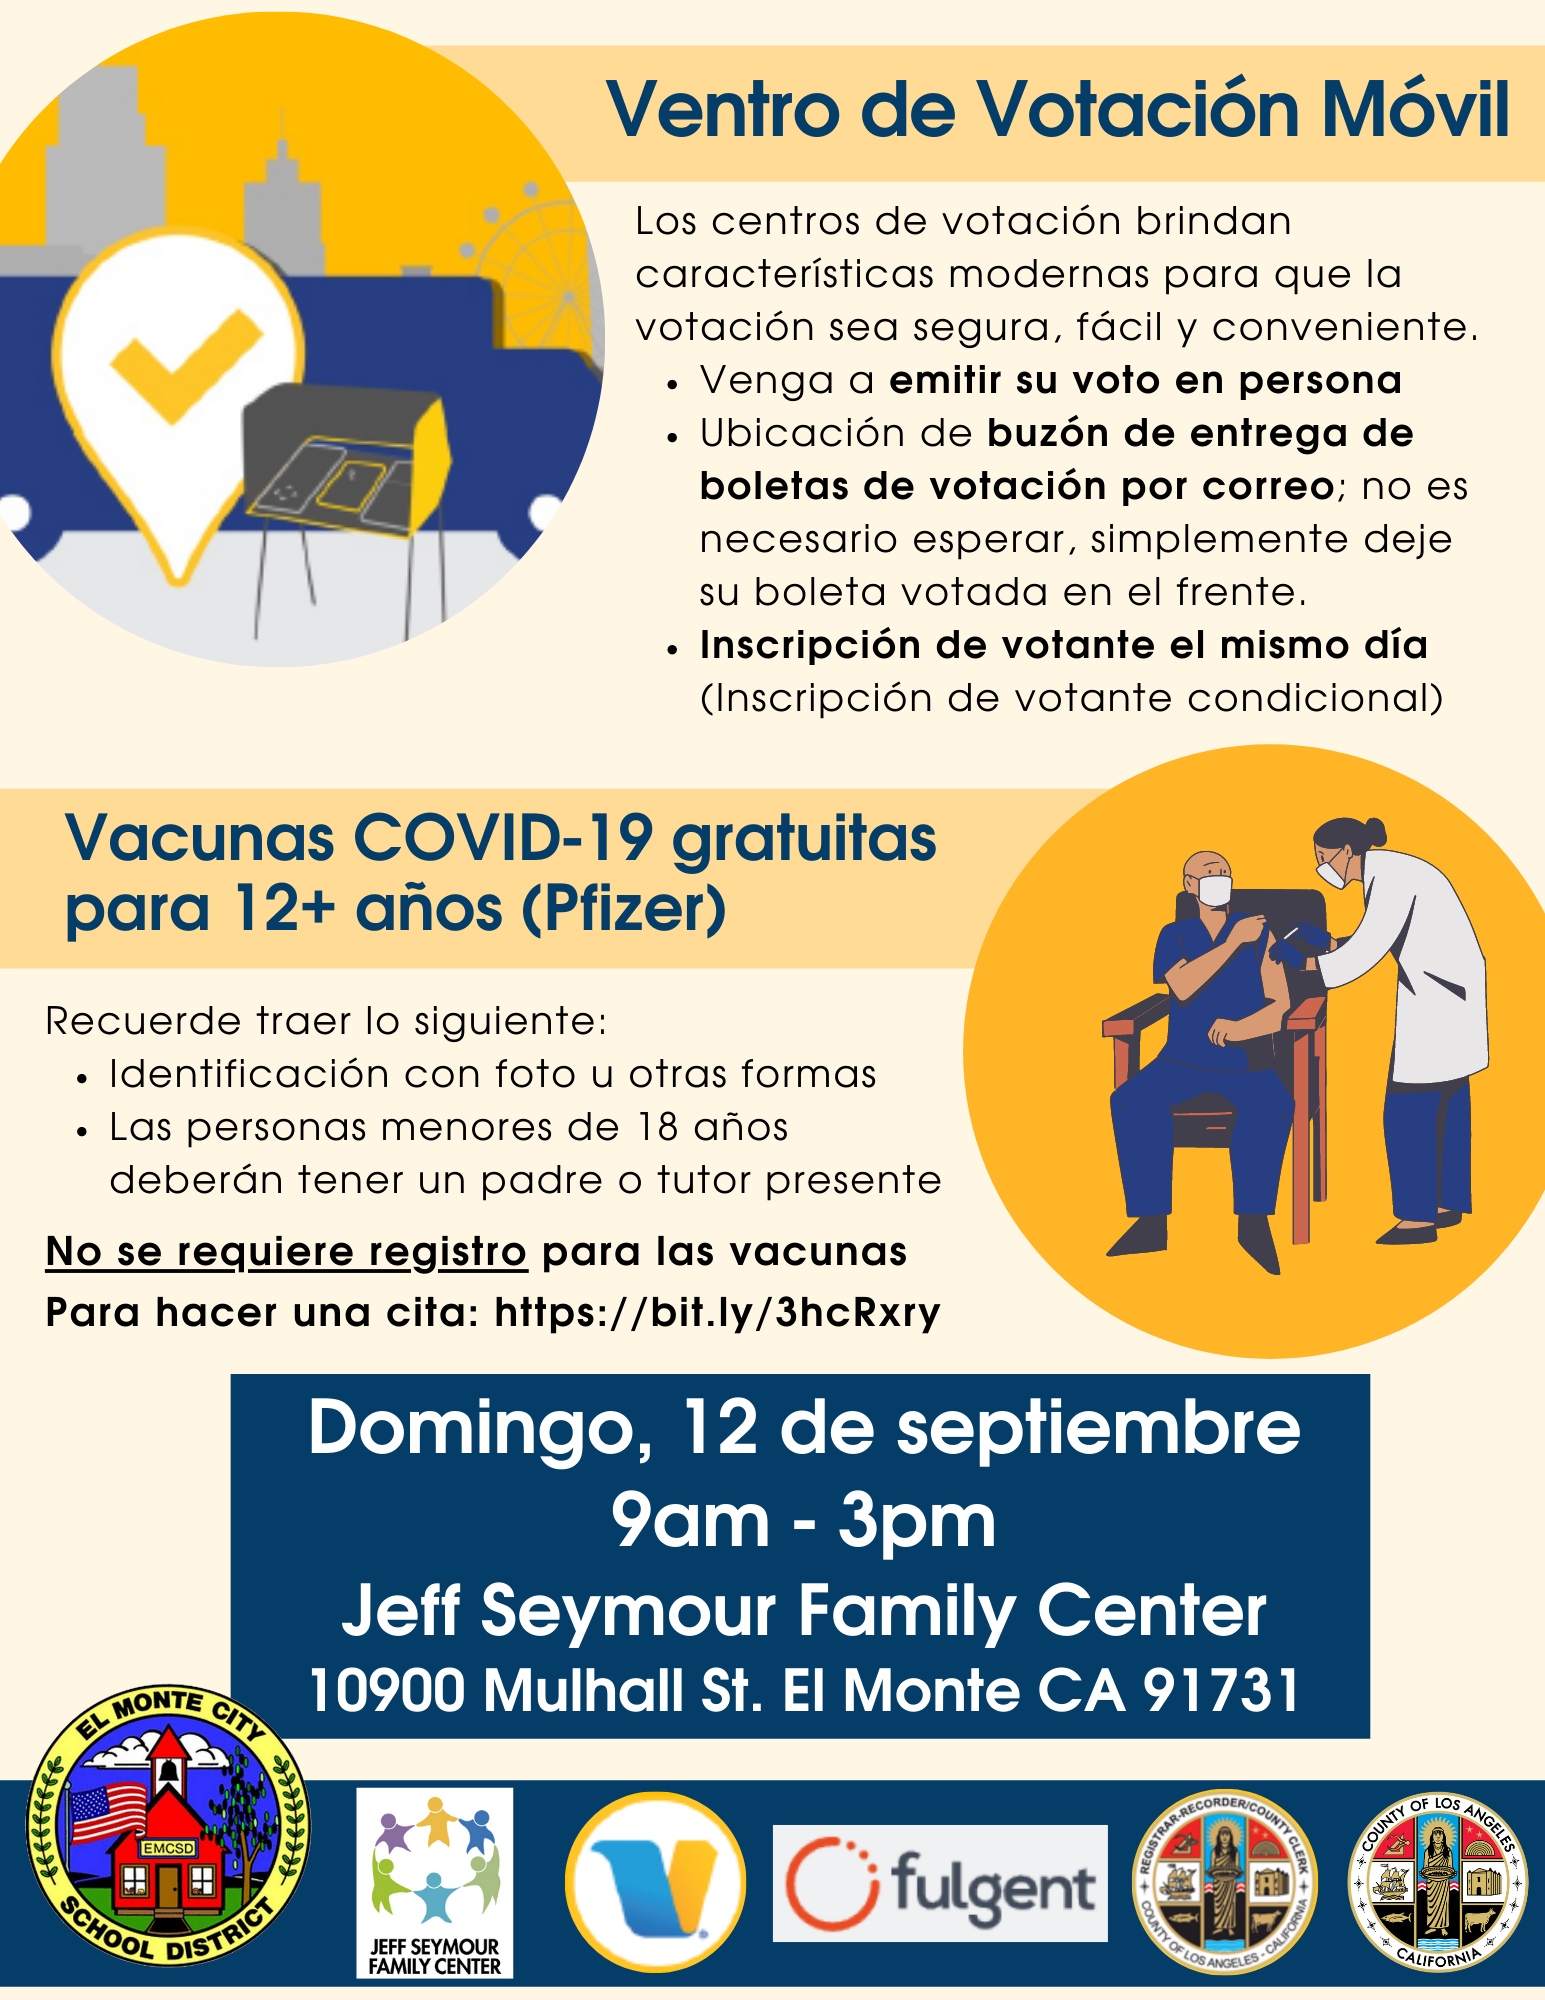 Mobile Voting Center and Pop-Up Vaccine Clinic at Jeff Seymour Family Center on Sunday, September 12 from 9am - 3pm. Spanish flyer